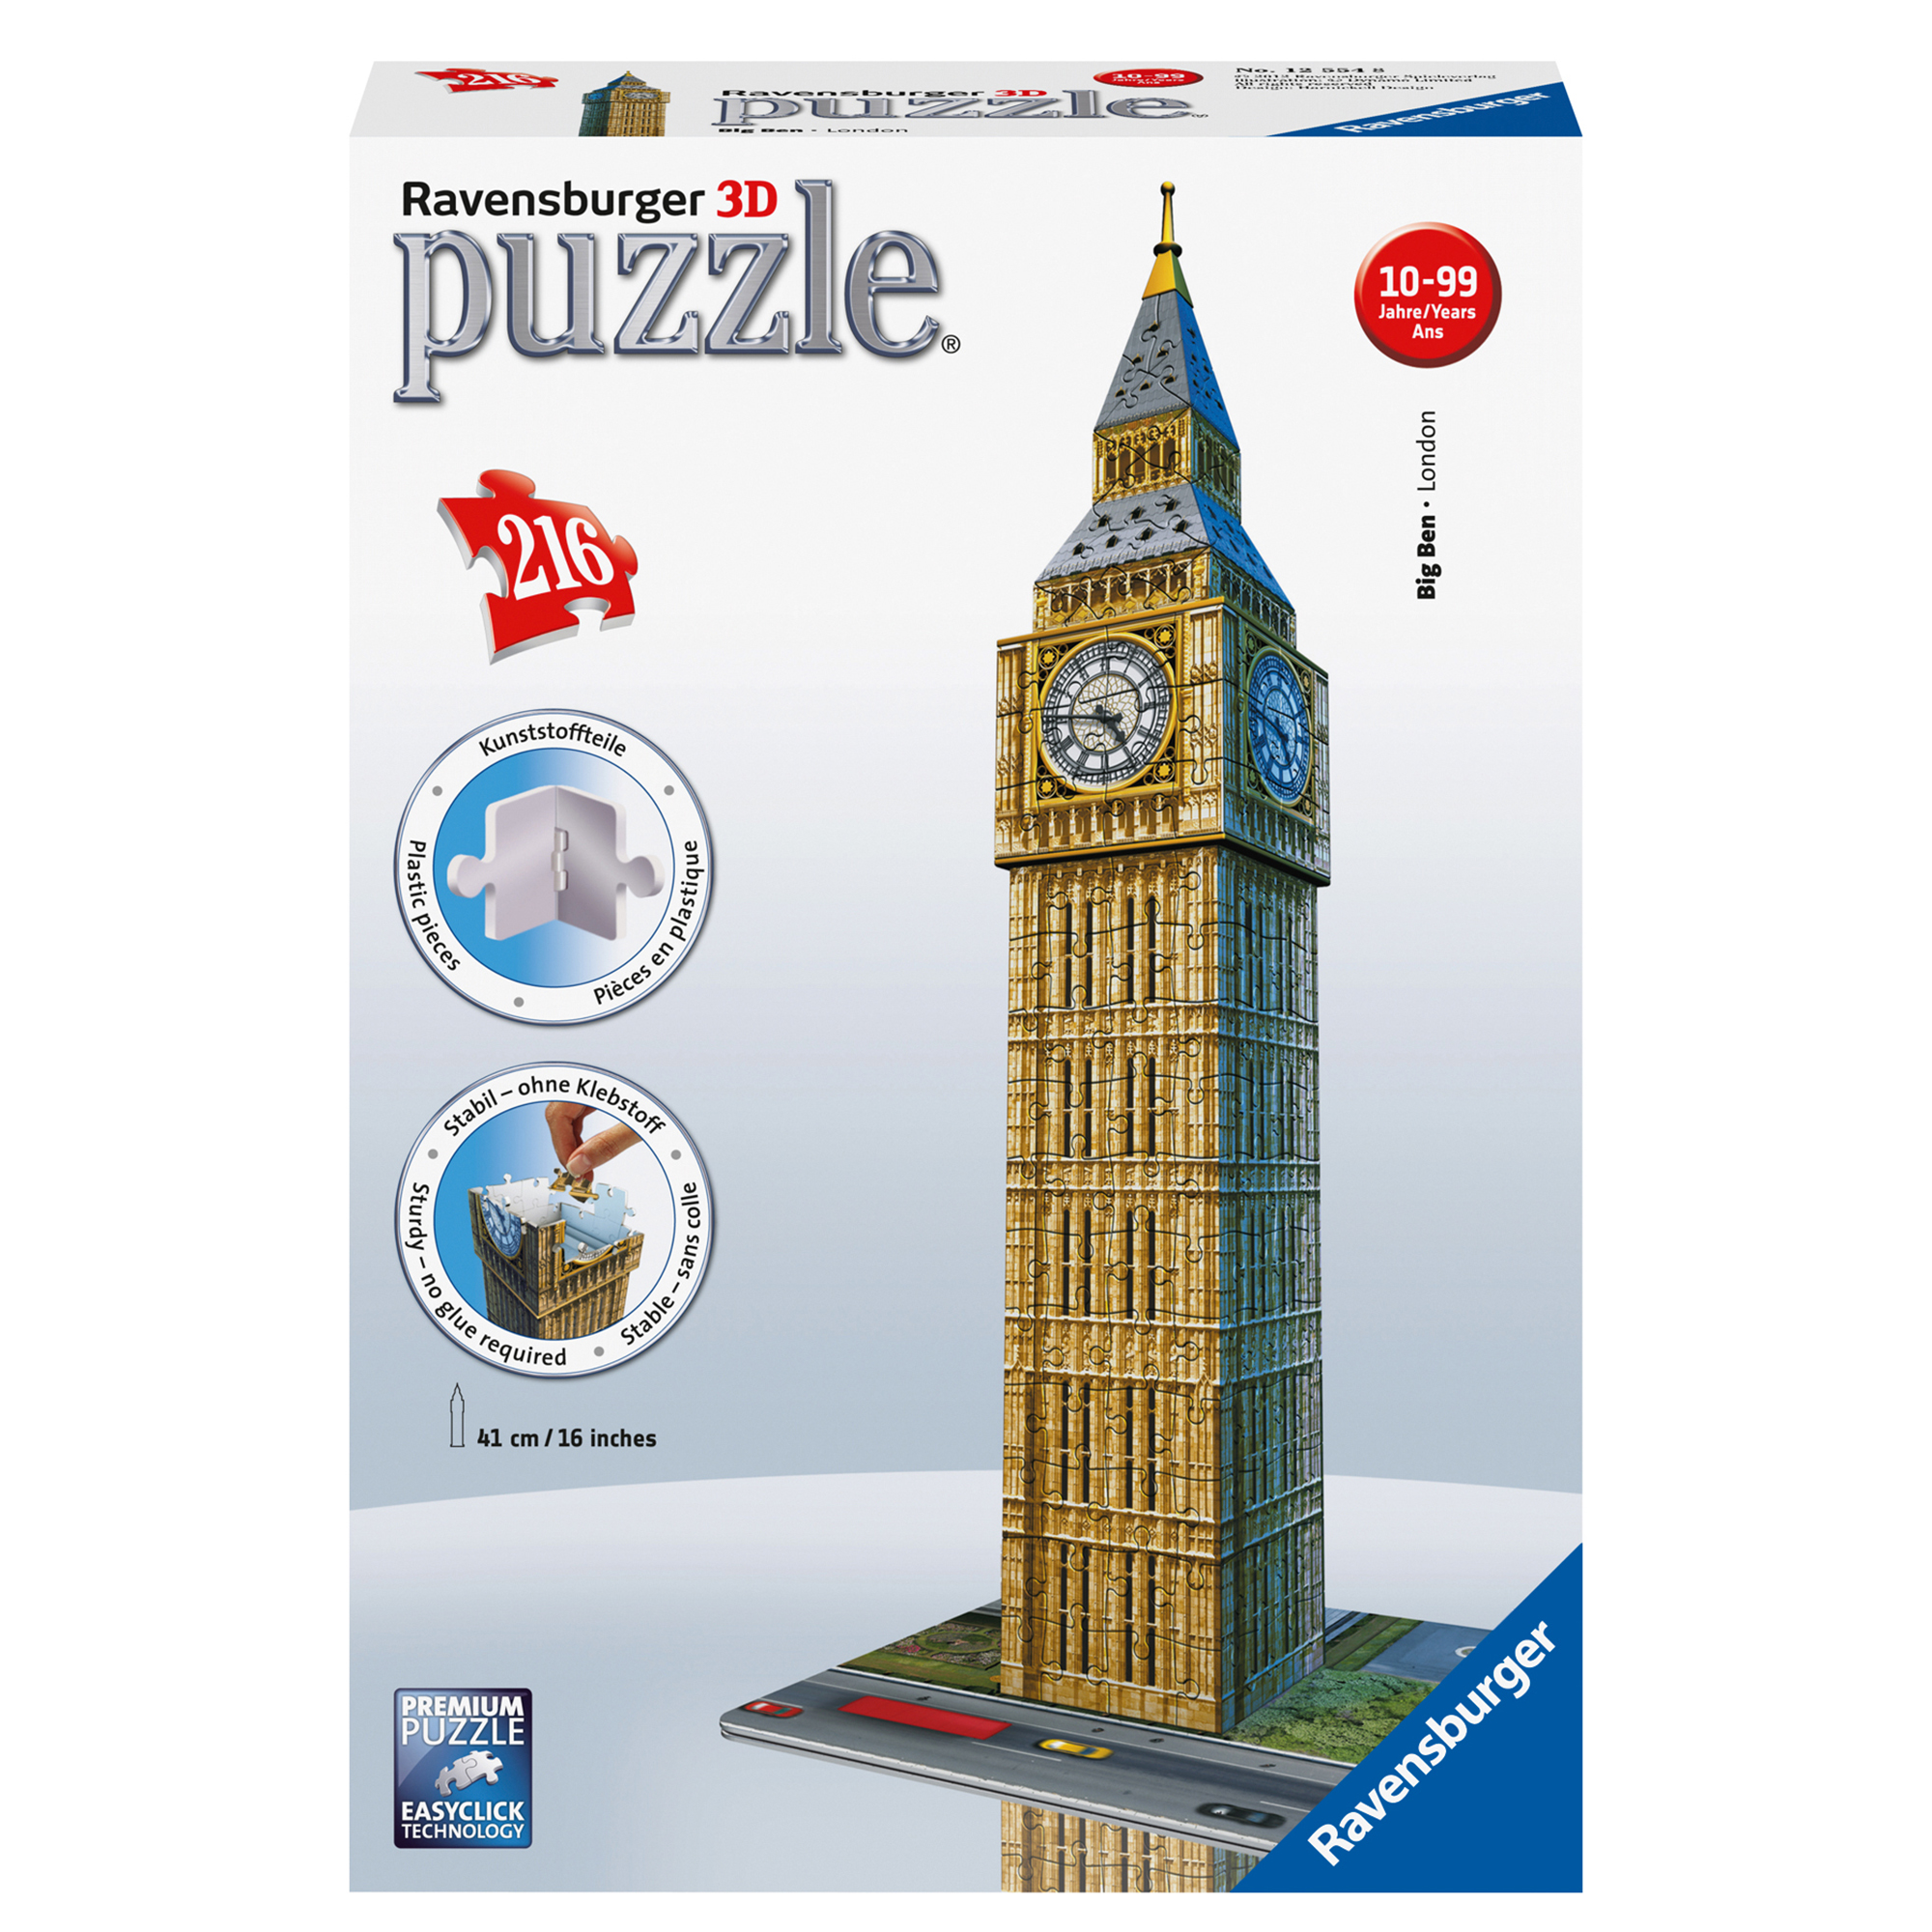 Ravensburger Big Ben Building 216 Piece 3D Puzzle